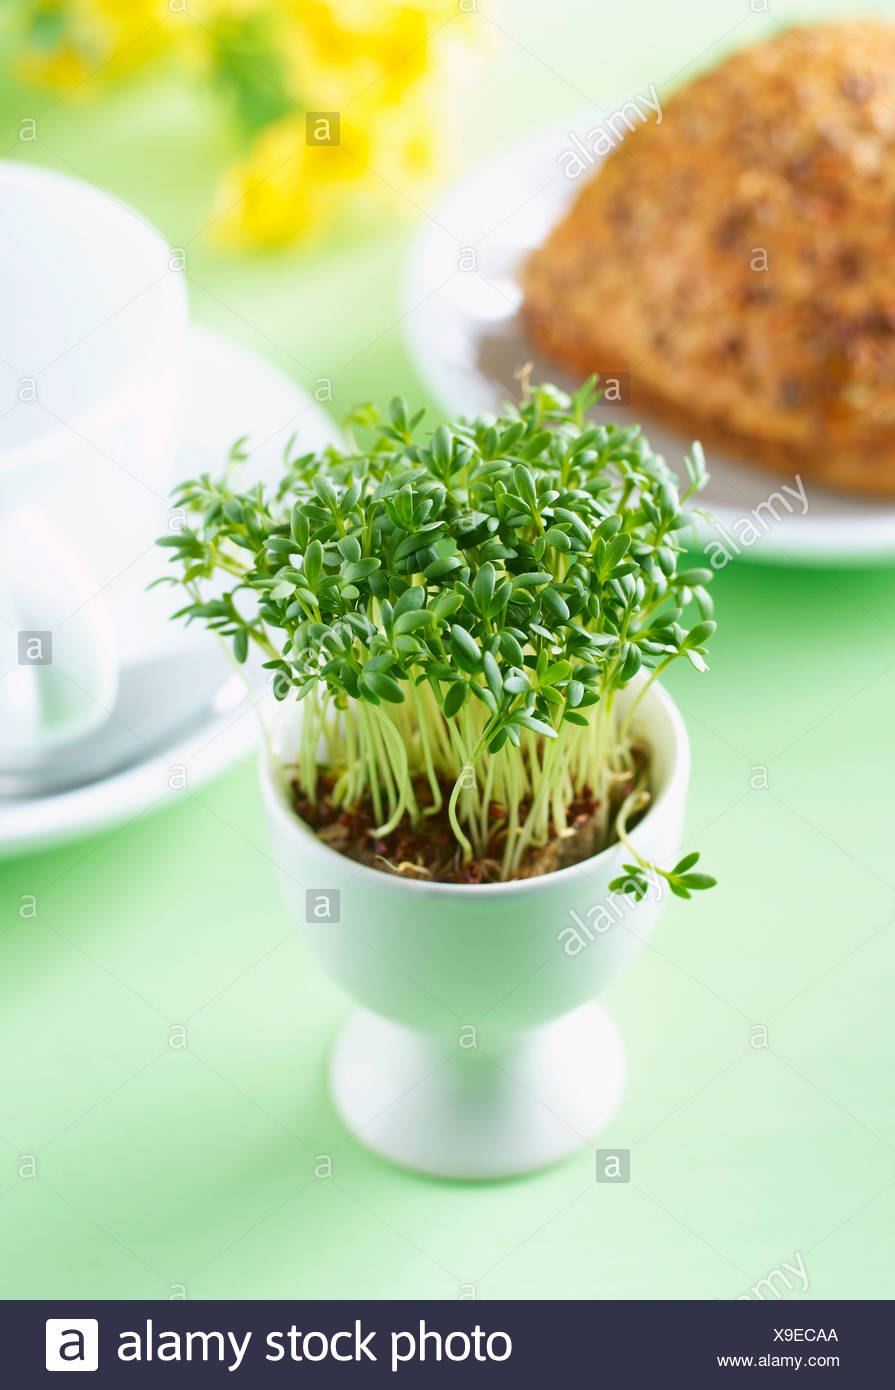 Cress Plant Stock Photos Amp Cress Plant Stock Images Alamy